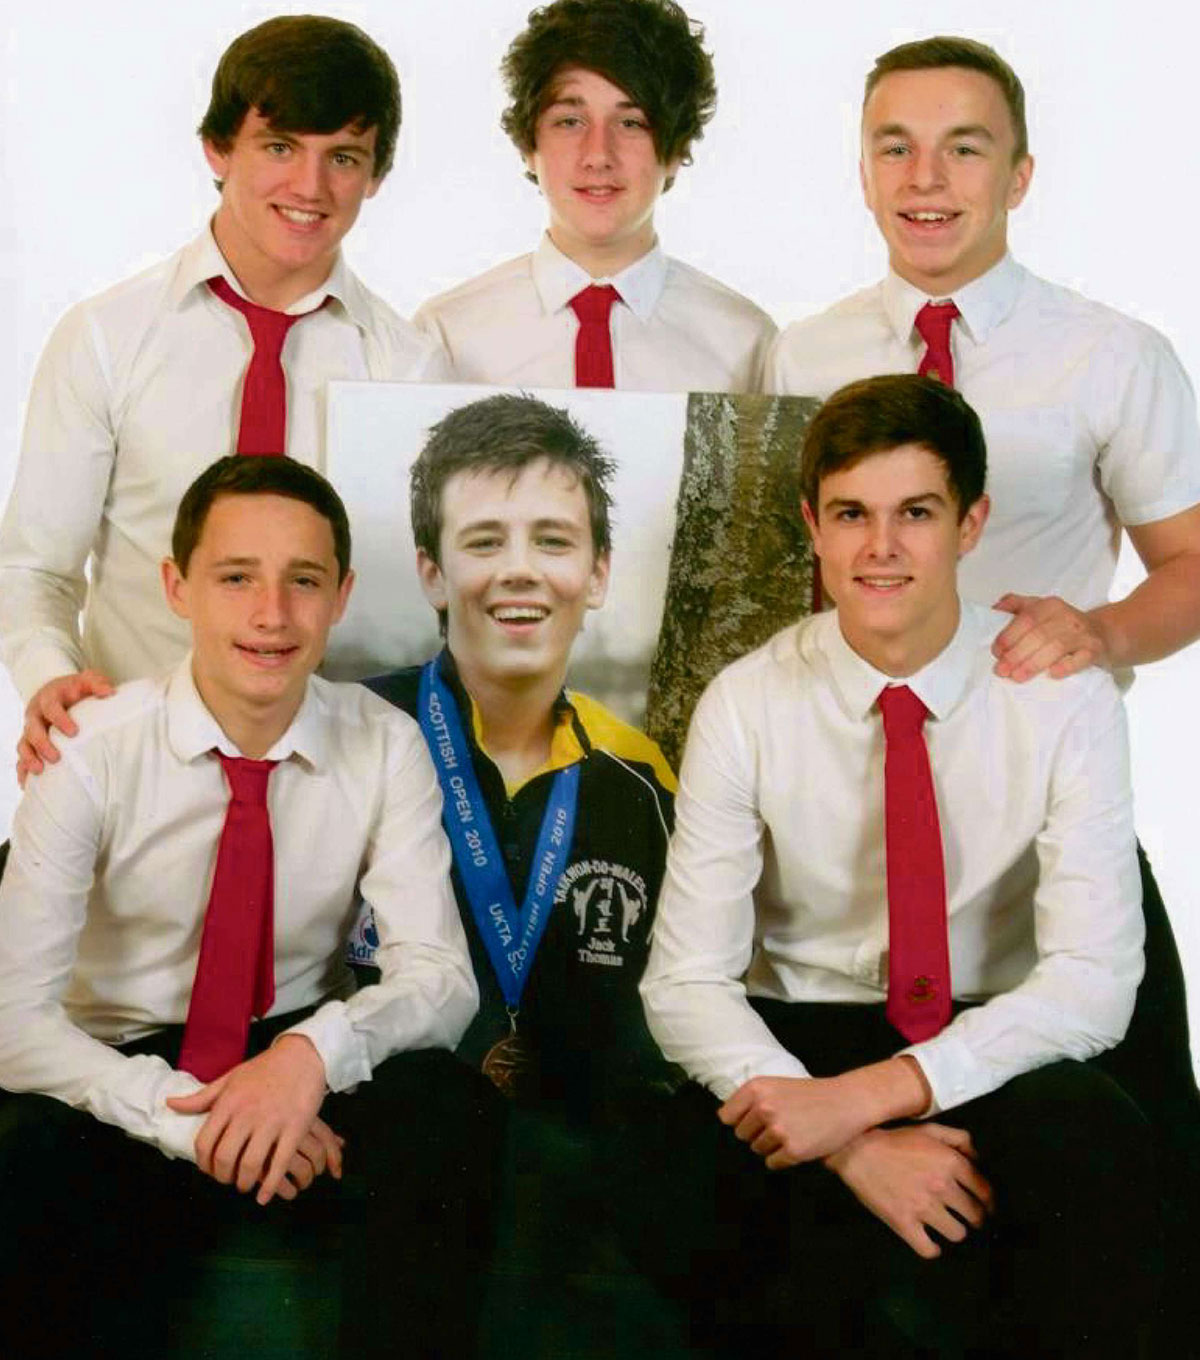 FRIENDS FOREVER: Jack's friends insisted he would be included in the end of year 11 photo shoot. Front from left to right: Jordan Collier, Jack Thomas, Kane Jones; and back: Owen Davies, Arron Brimble and Scott Winnel